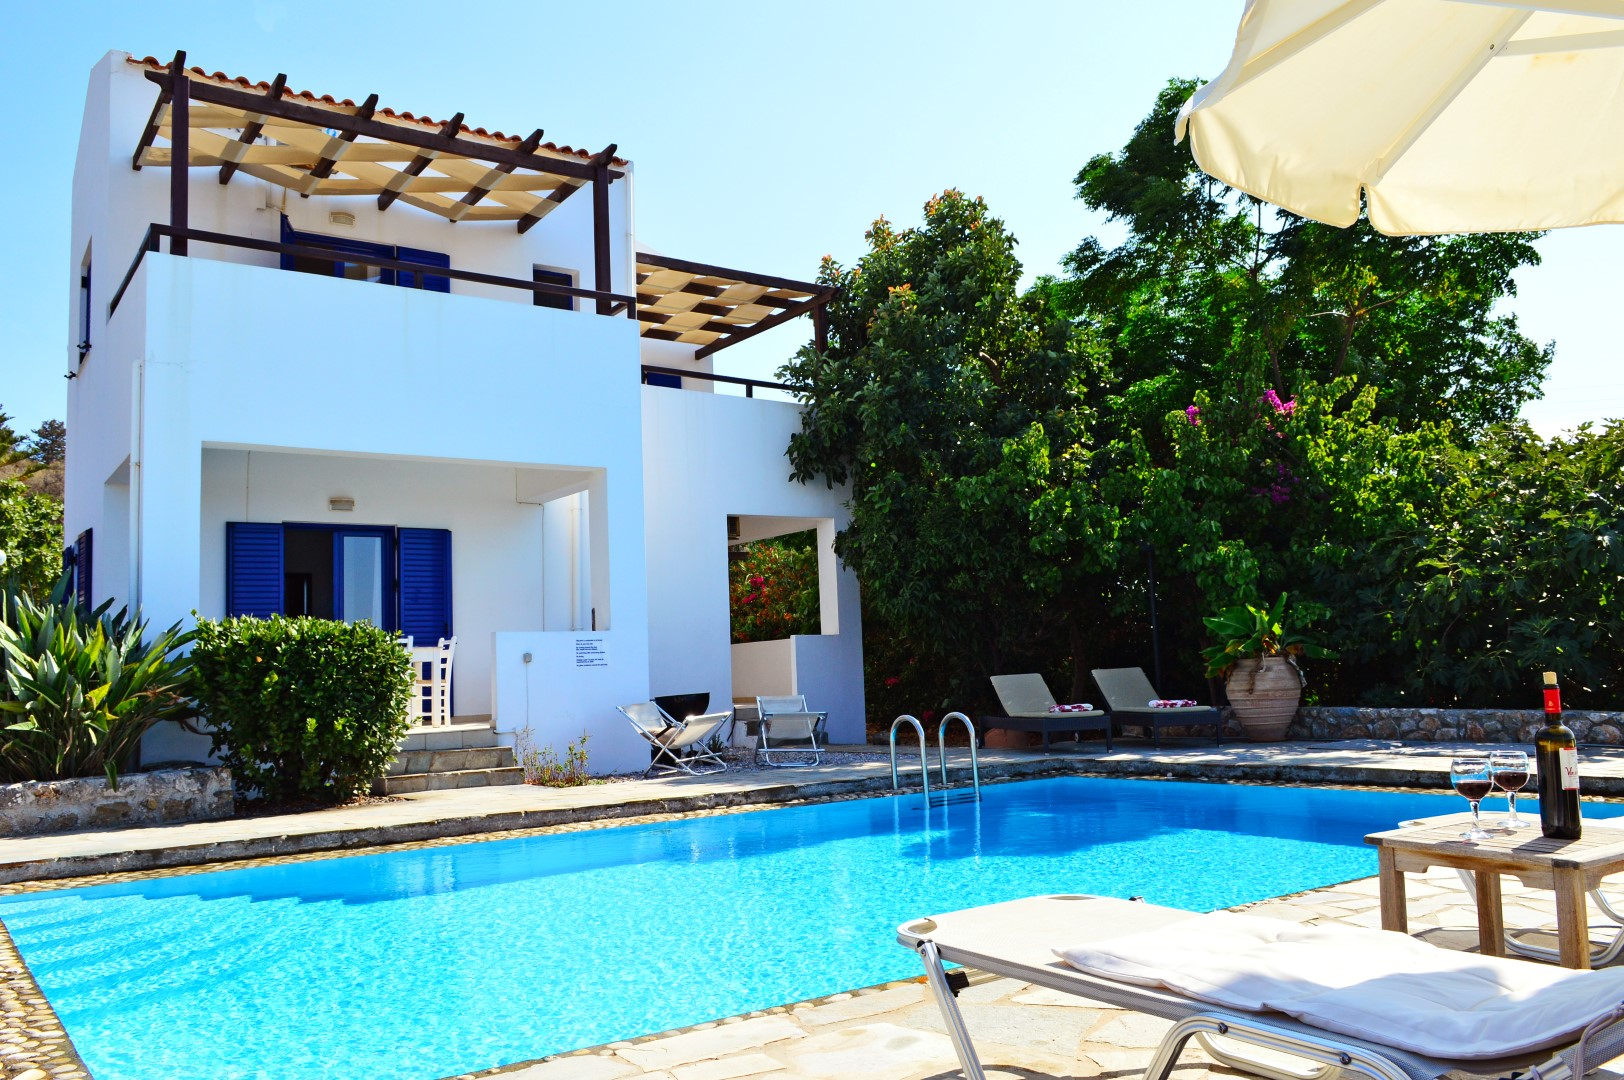 Crete chania new resale property estate agent sales greece for Modern house estate agents